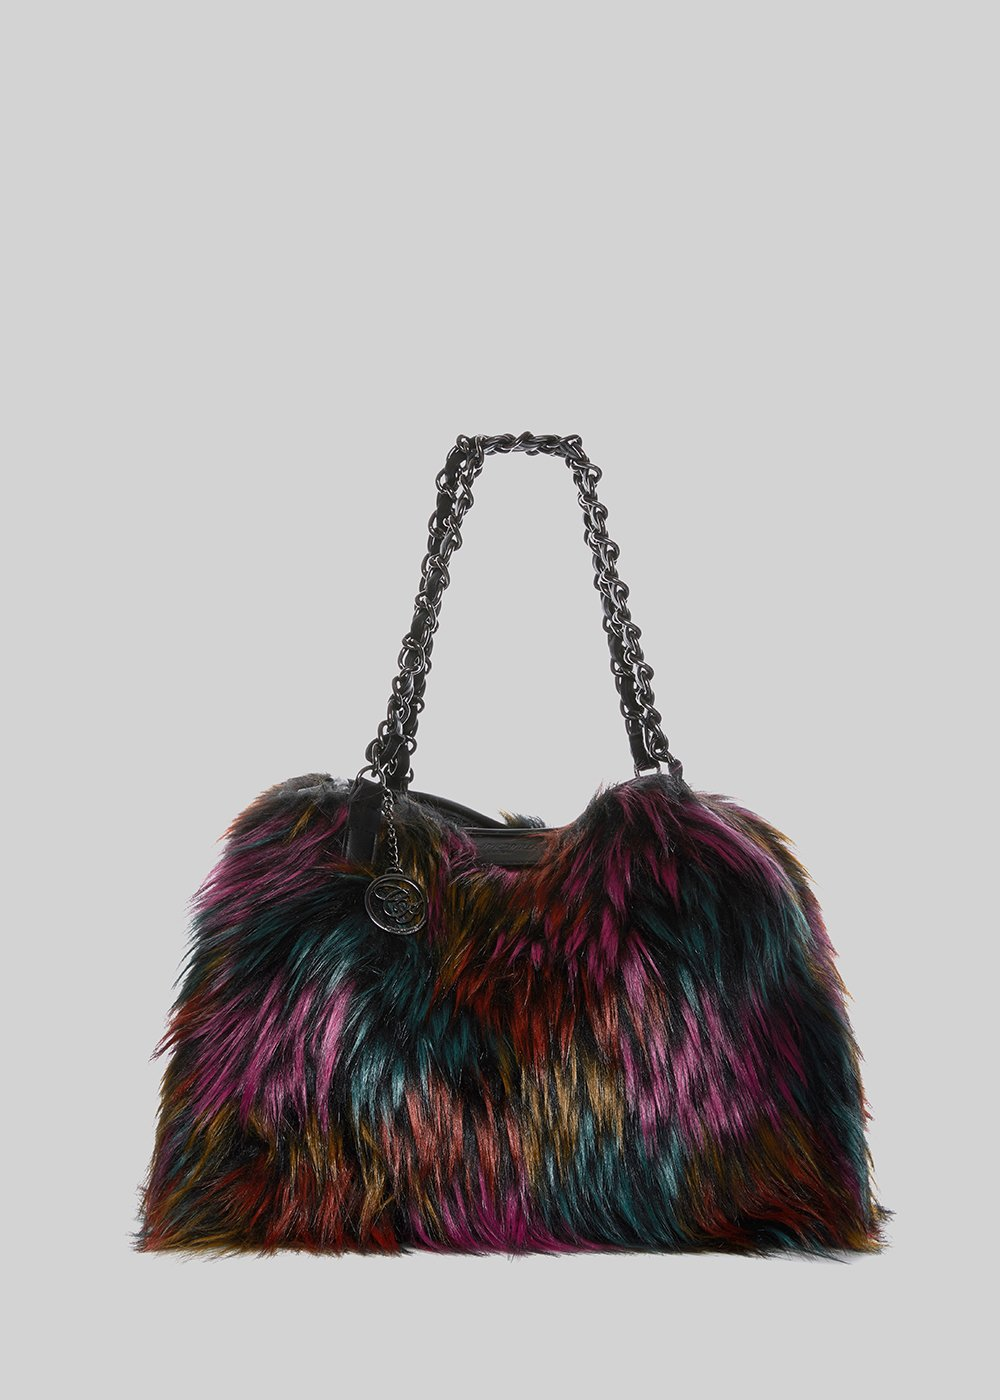 Fake fur multicolor bag Favolosa with chain handles - Black Fantasia